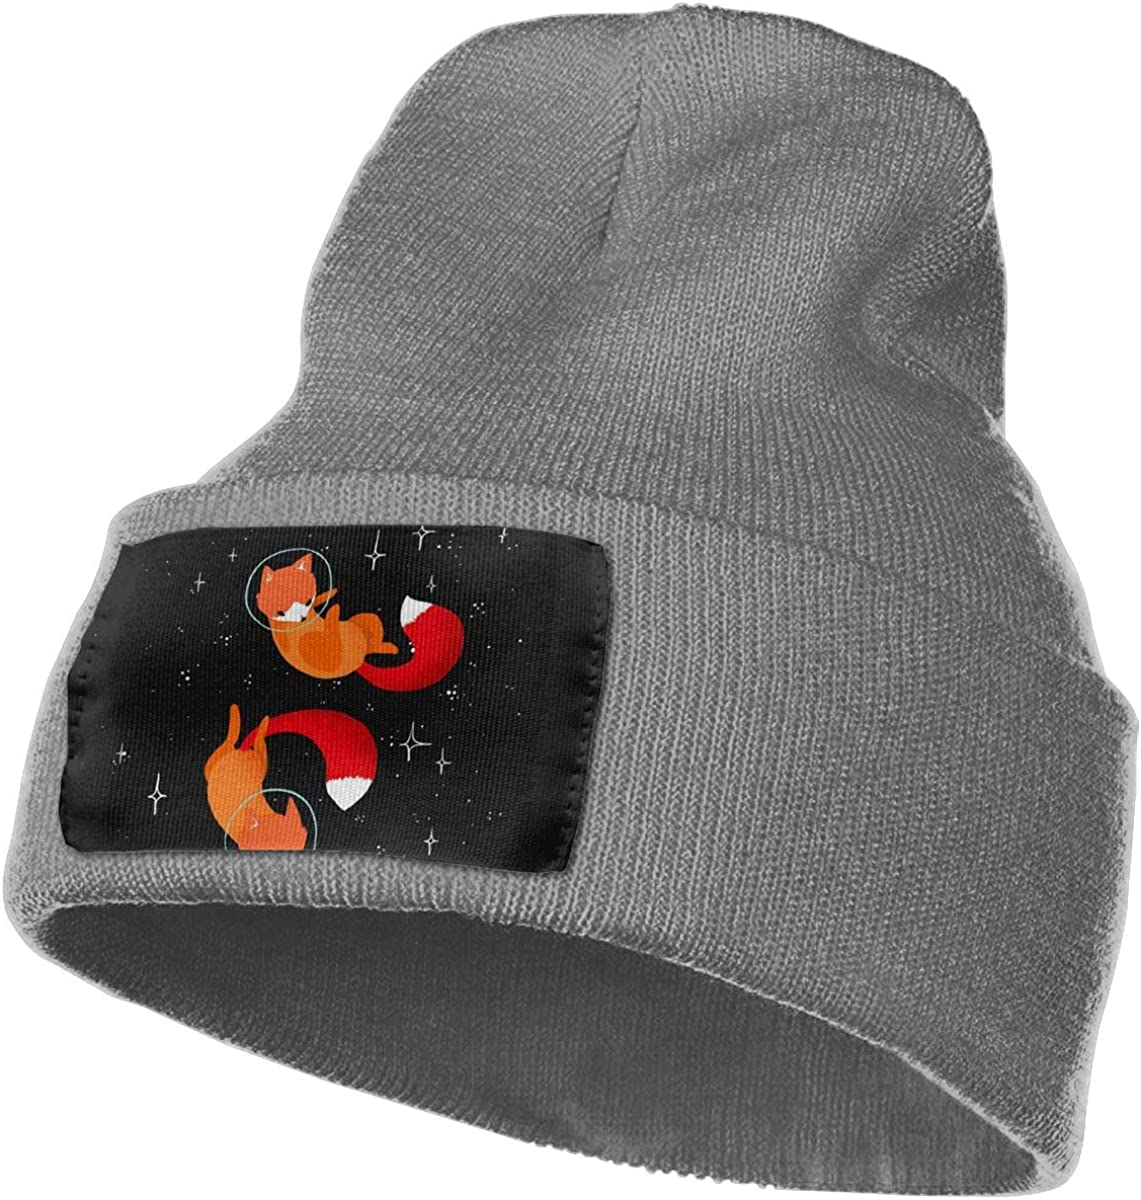 Fox in Space Winter Warm Hats,Knit Slouchy Thick Skull Cap Black